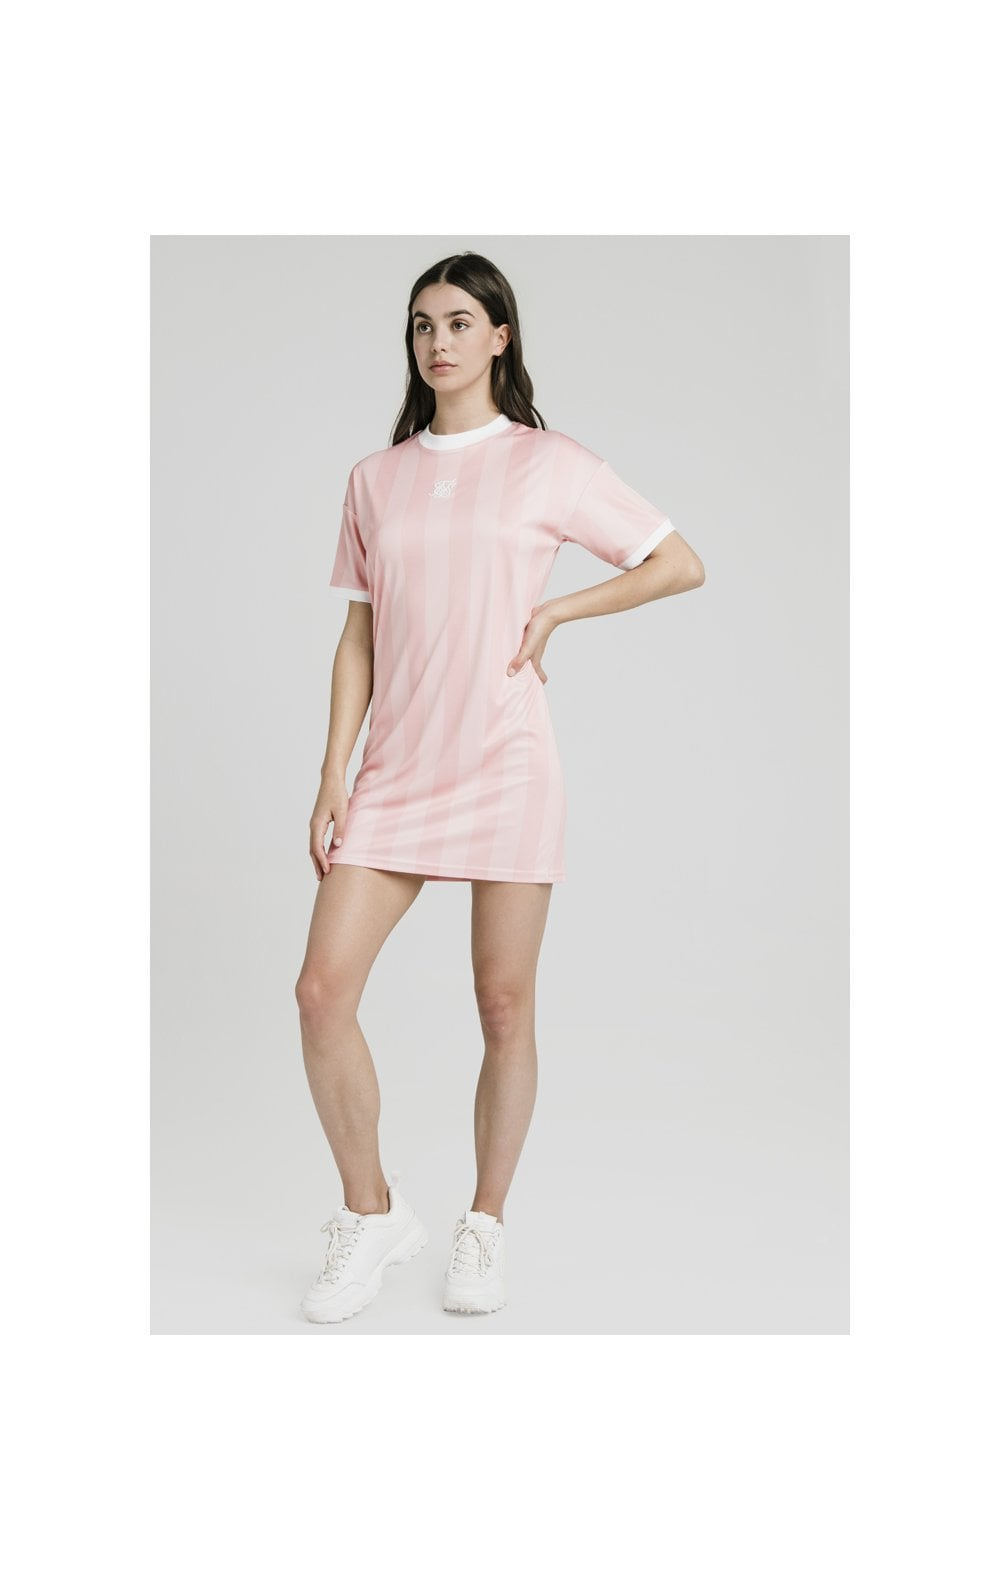 SikSilk Luxury Poly Dress - Apricot Blush (3)